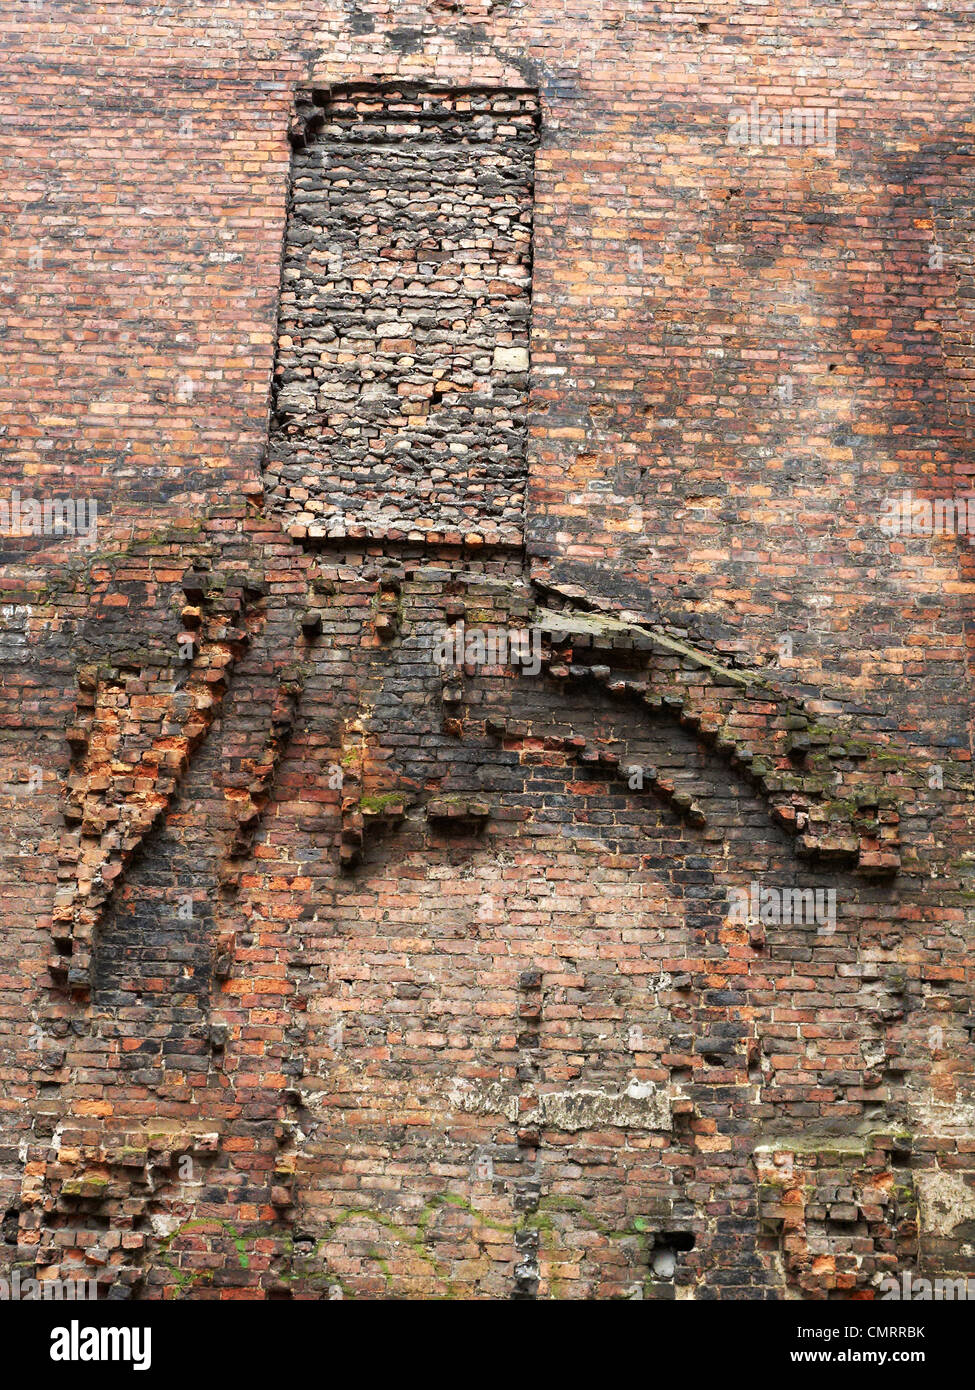 Remains of a demolished house in wall - Stock Image